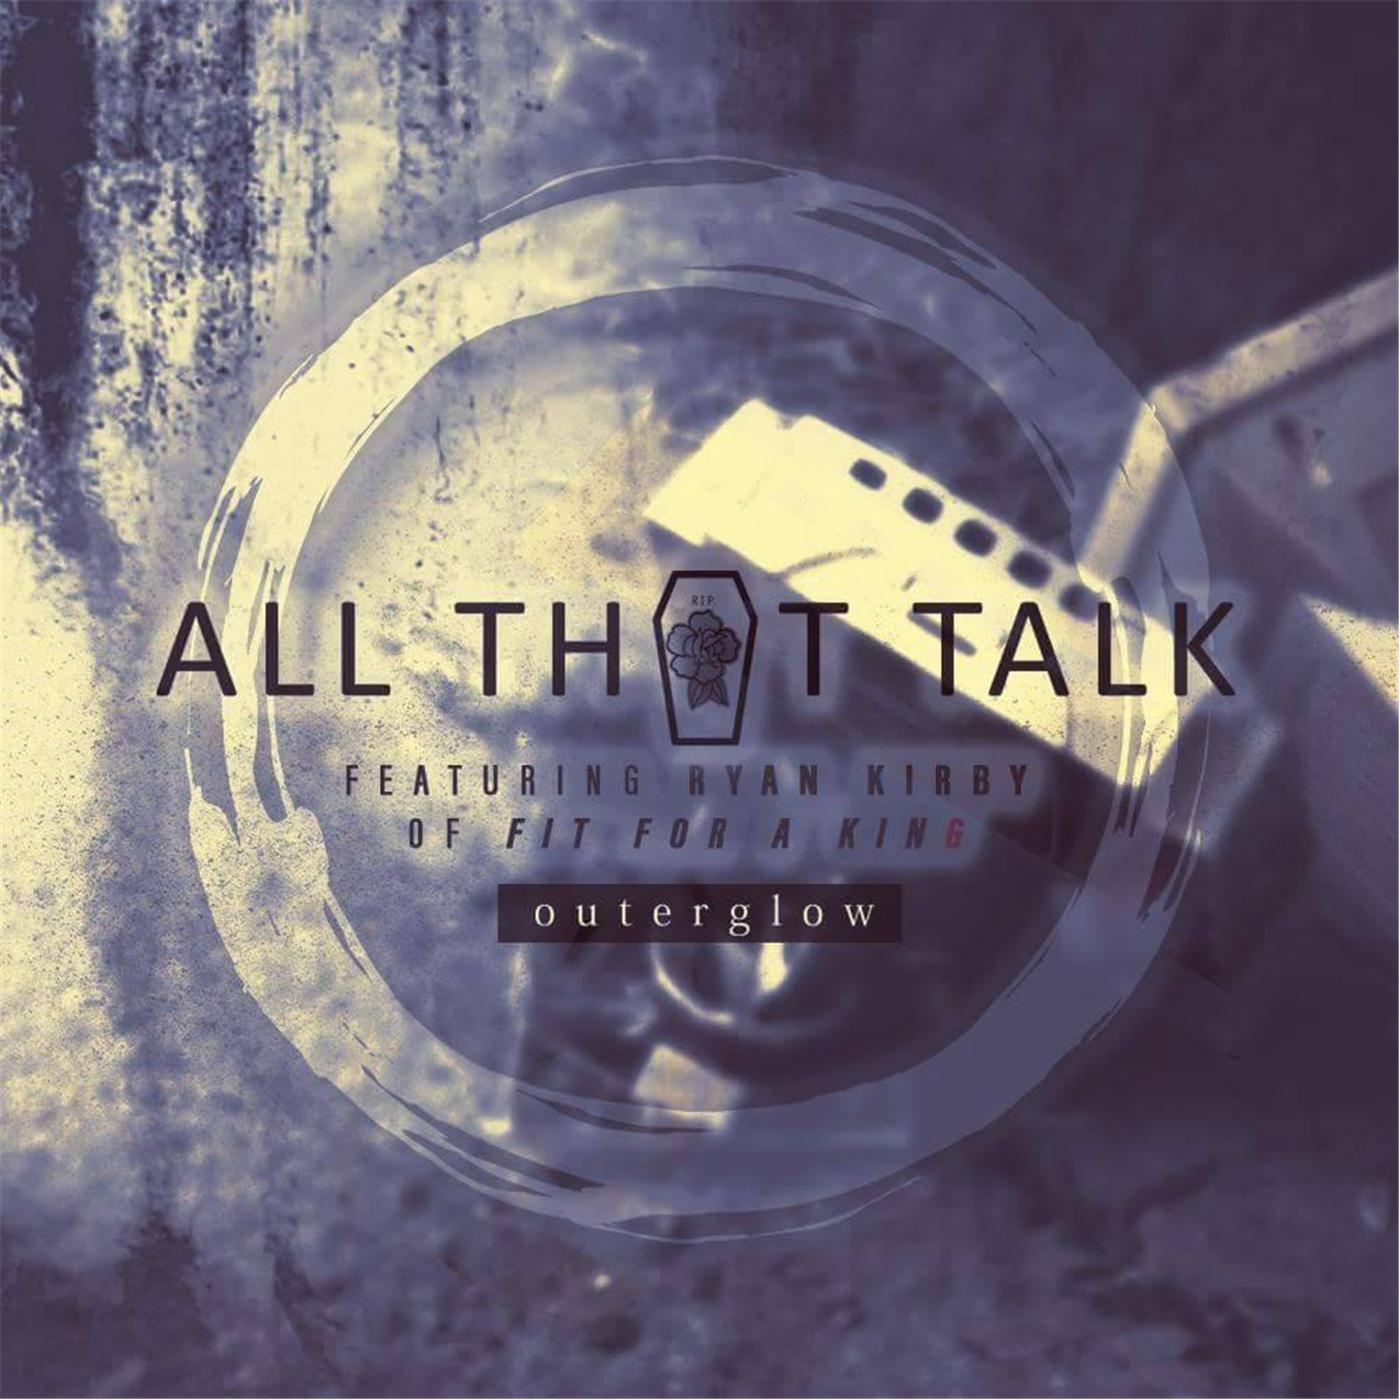 Outer Glow - All That Talk [single] (2016)